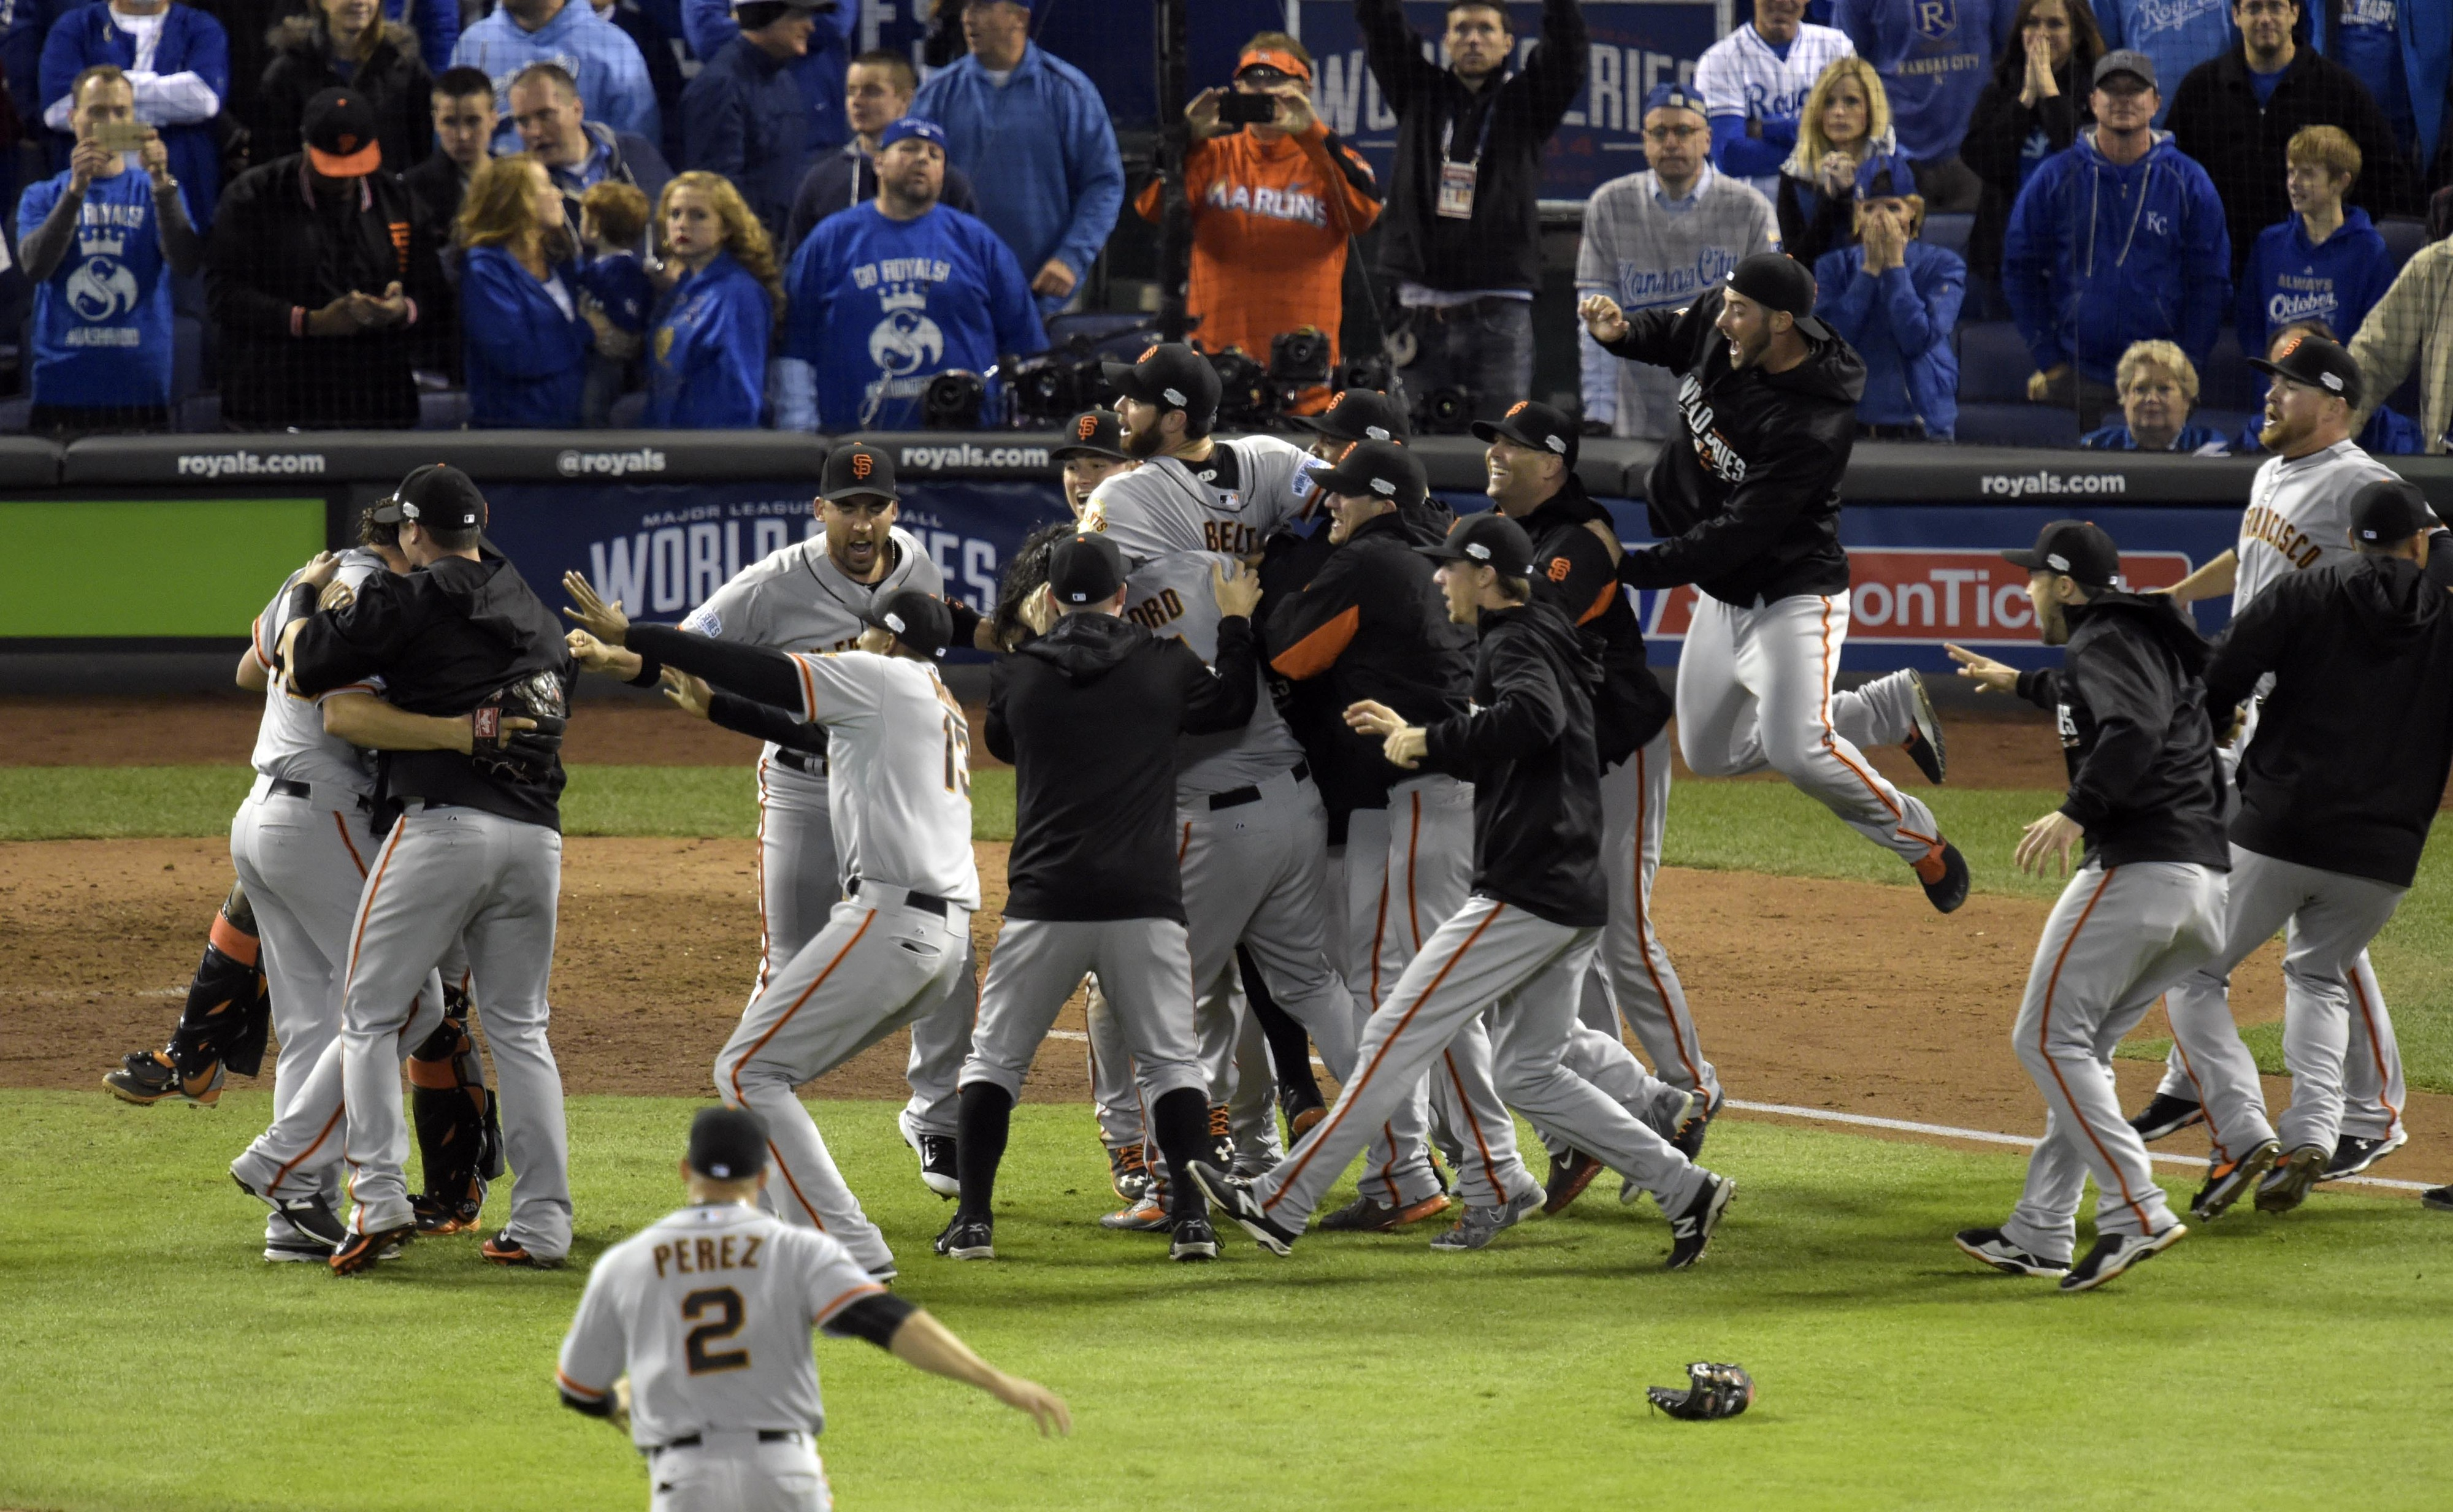 25 pictures of the Giants winning the 2014 World Series